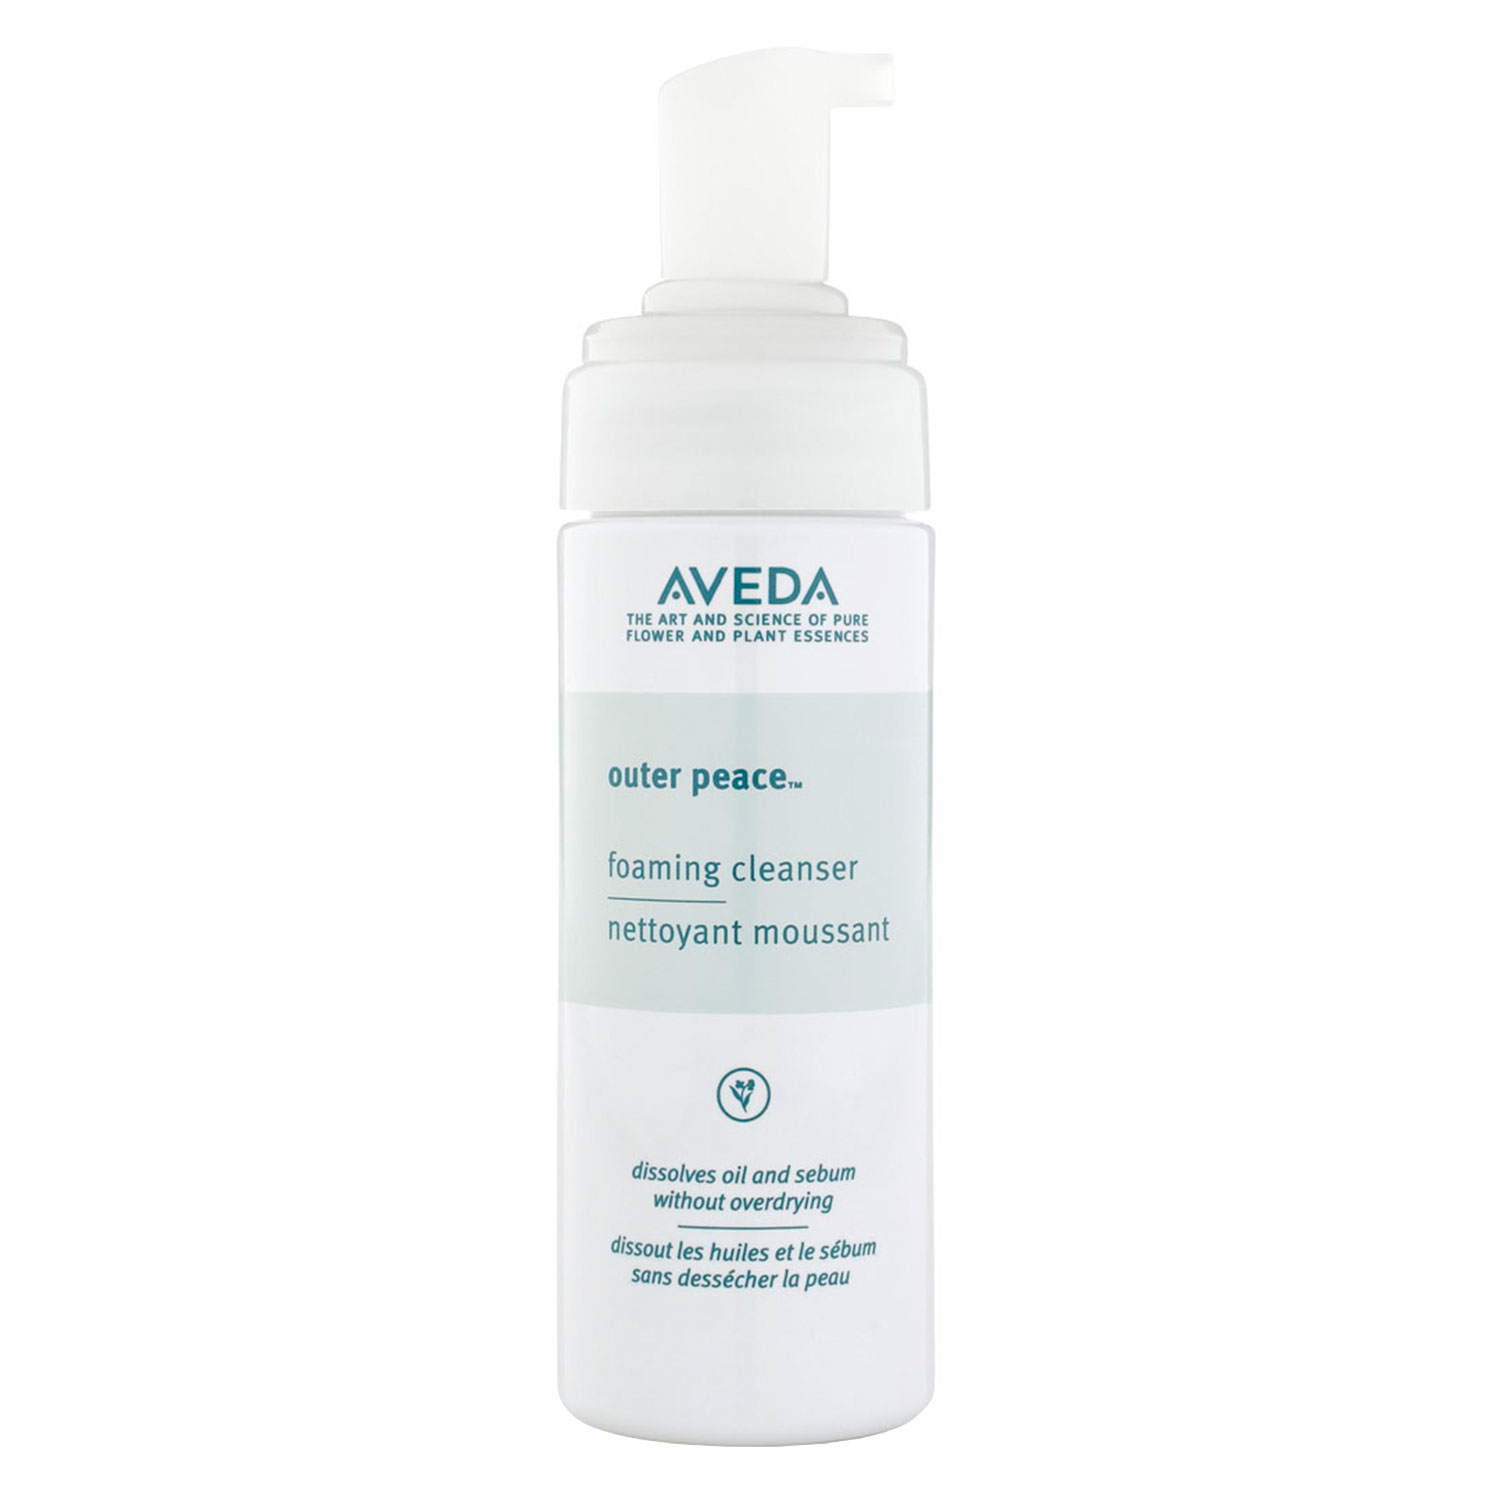 outer peace - foaming cleanser